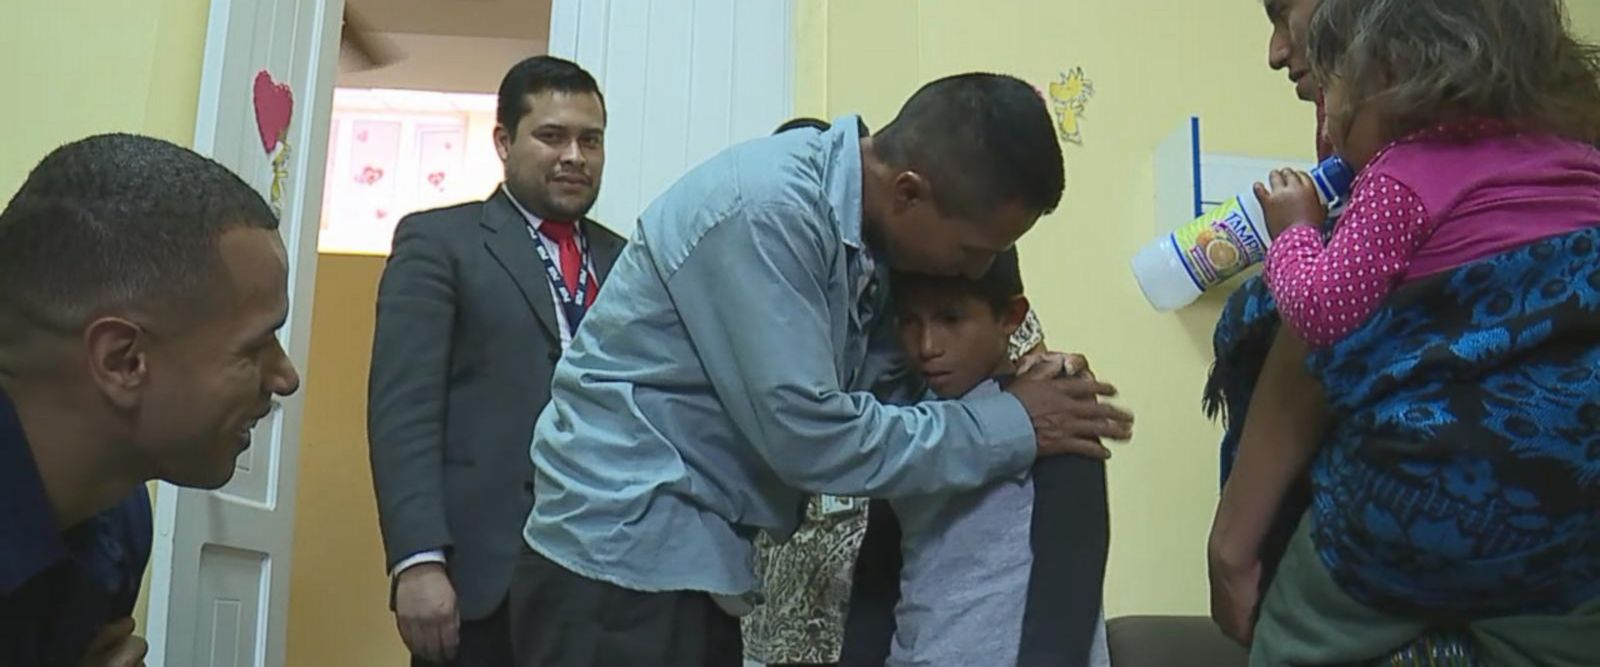 The boy had been living in foster care after being separated from his father at the U.S. border.